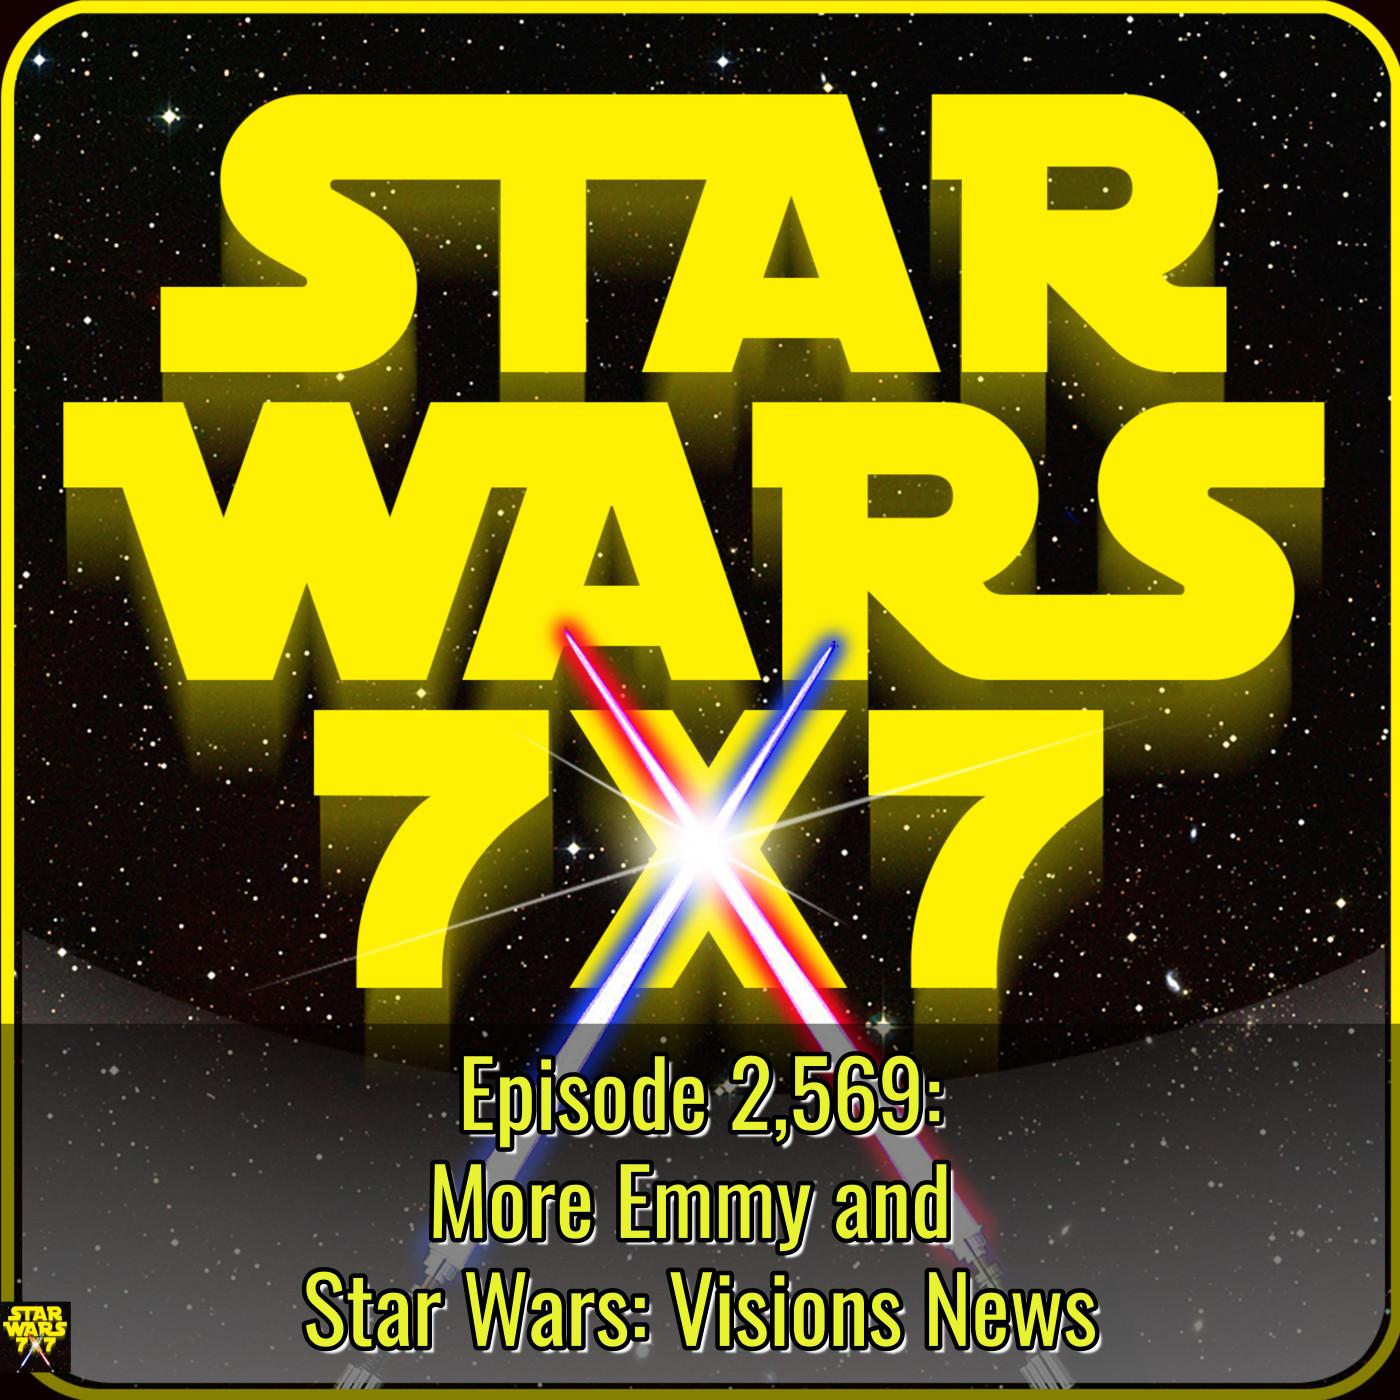 2,569. More Emmy and Star Wars: Visions News